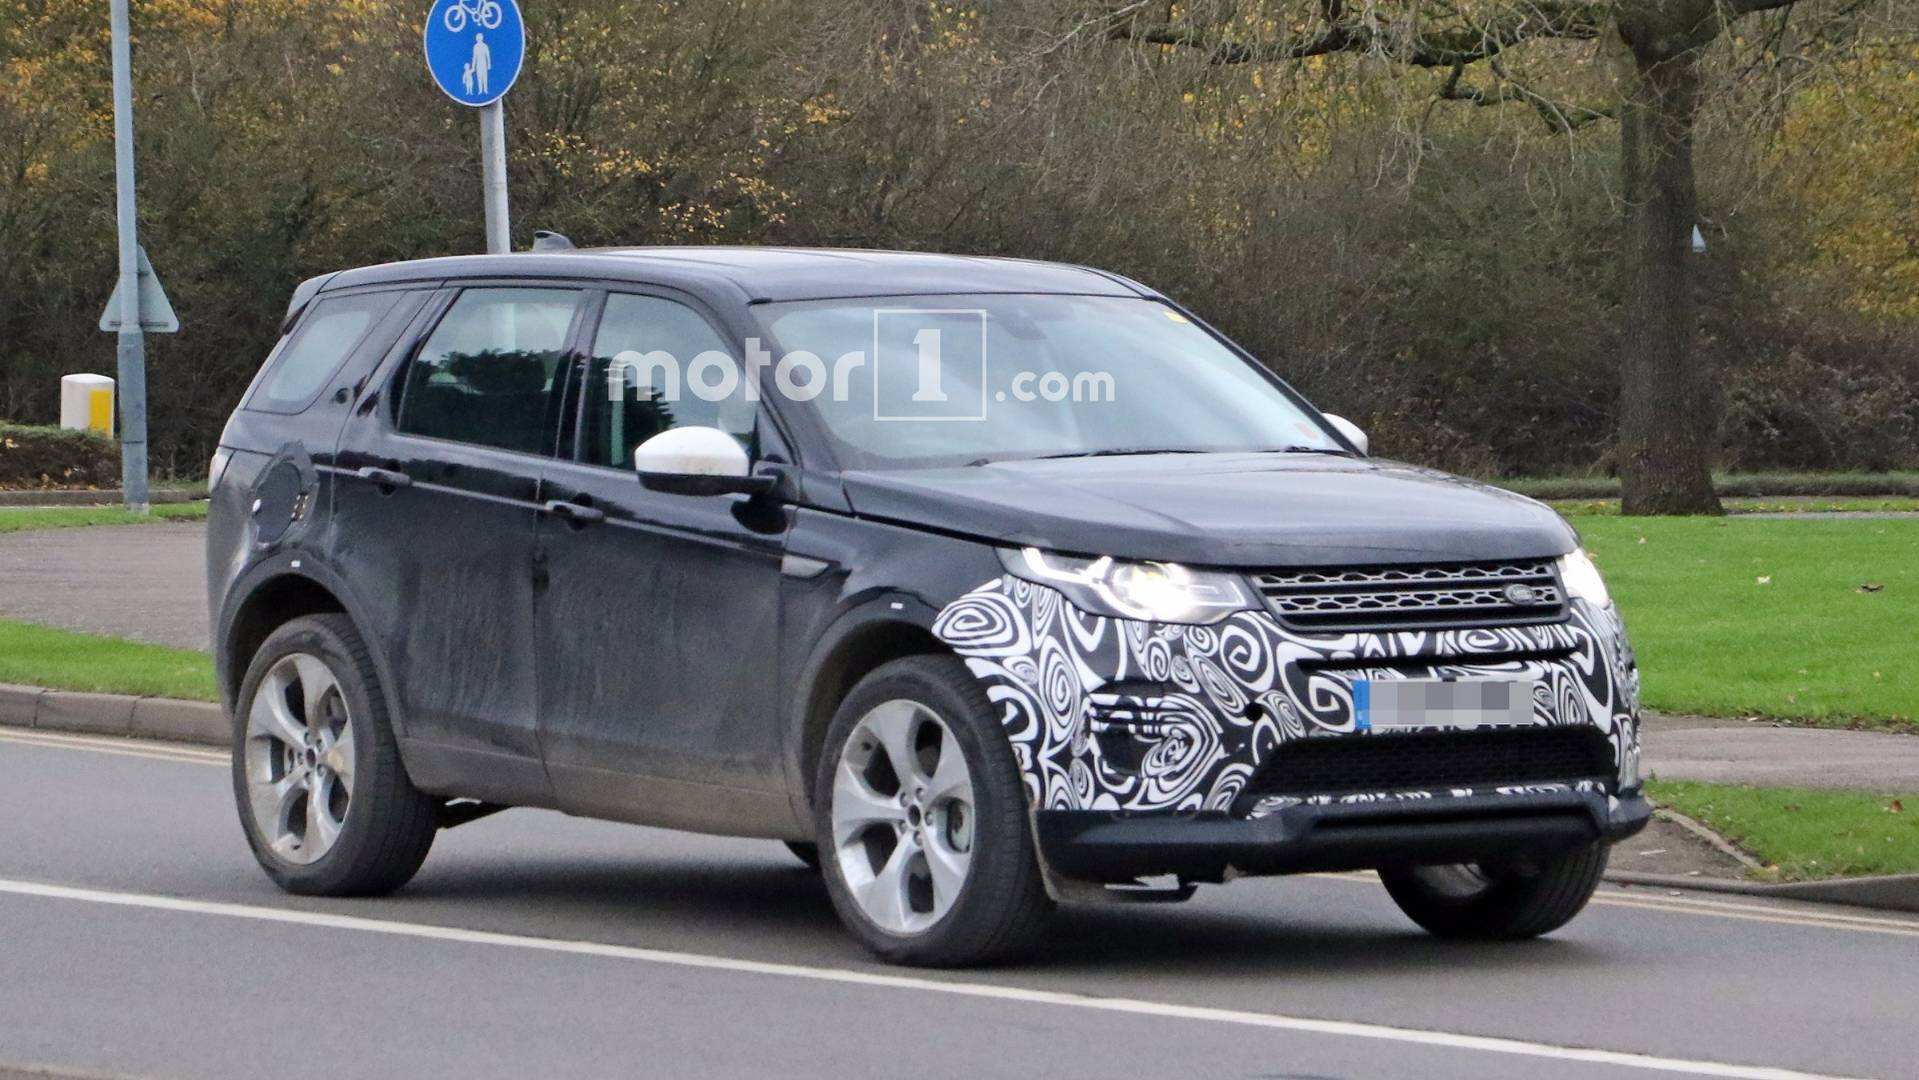 61 All New 2019 Land Rover Discovery Sport Prices